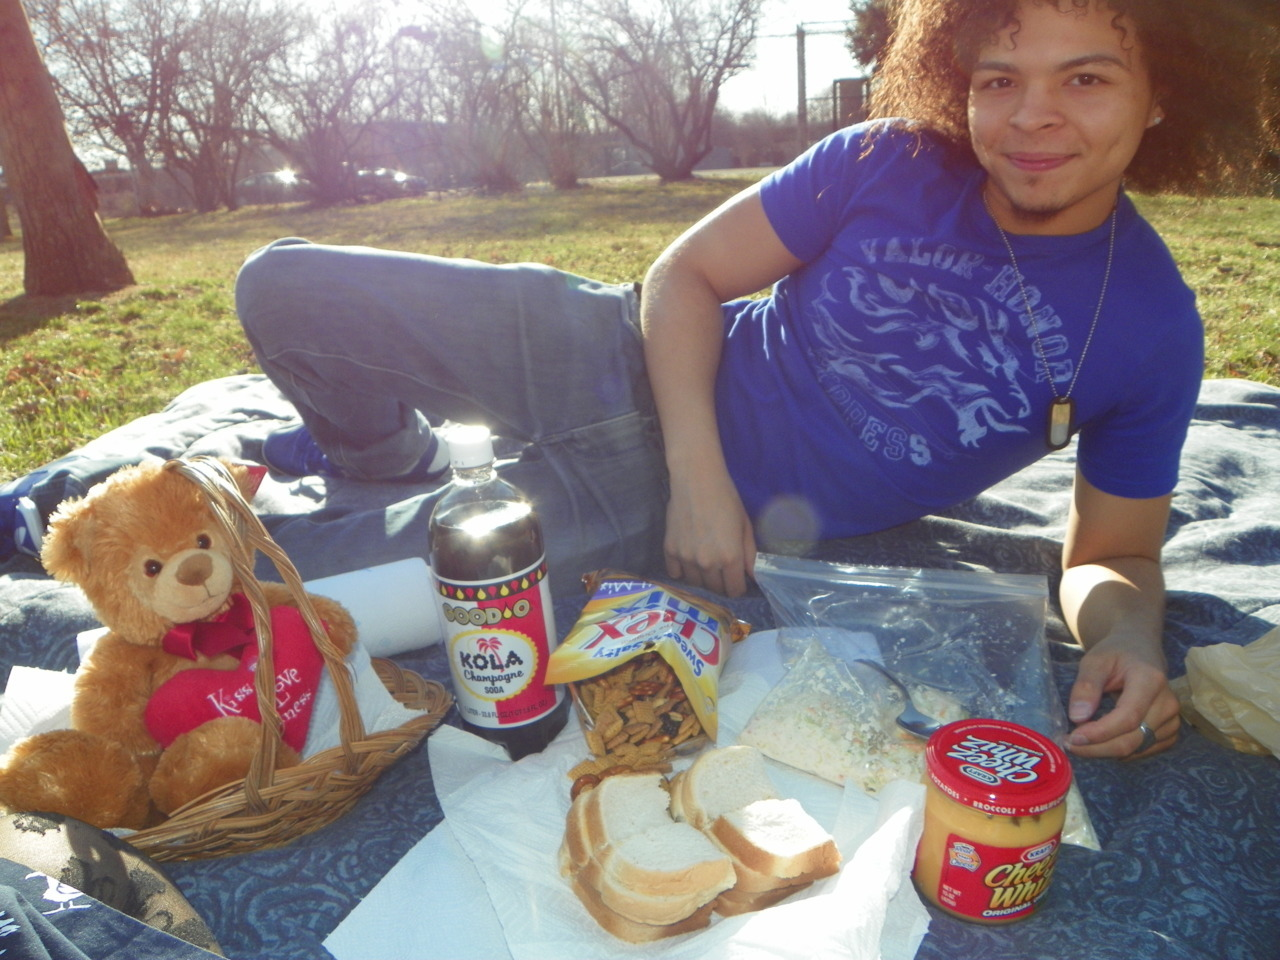 The perfect picnic with me baby:)